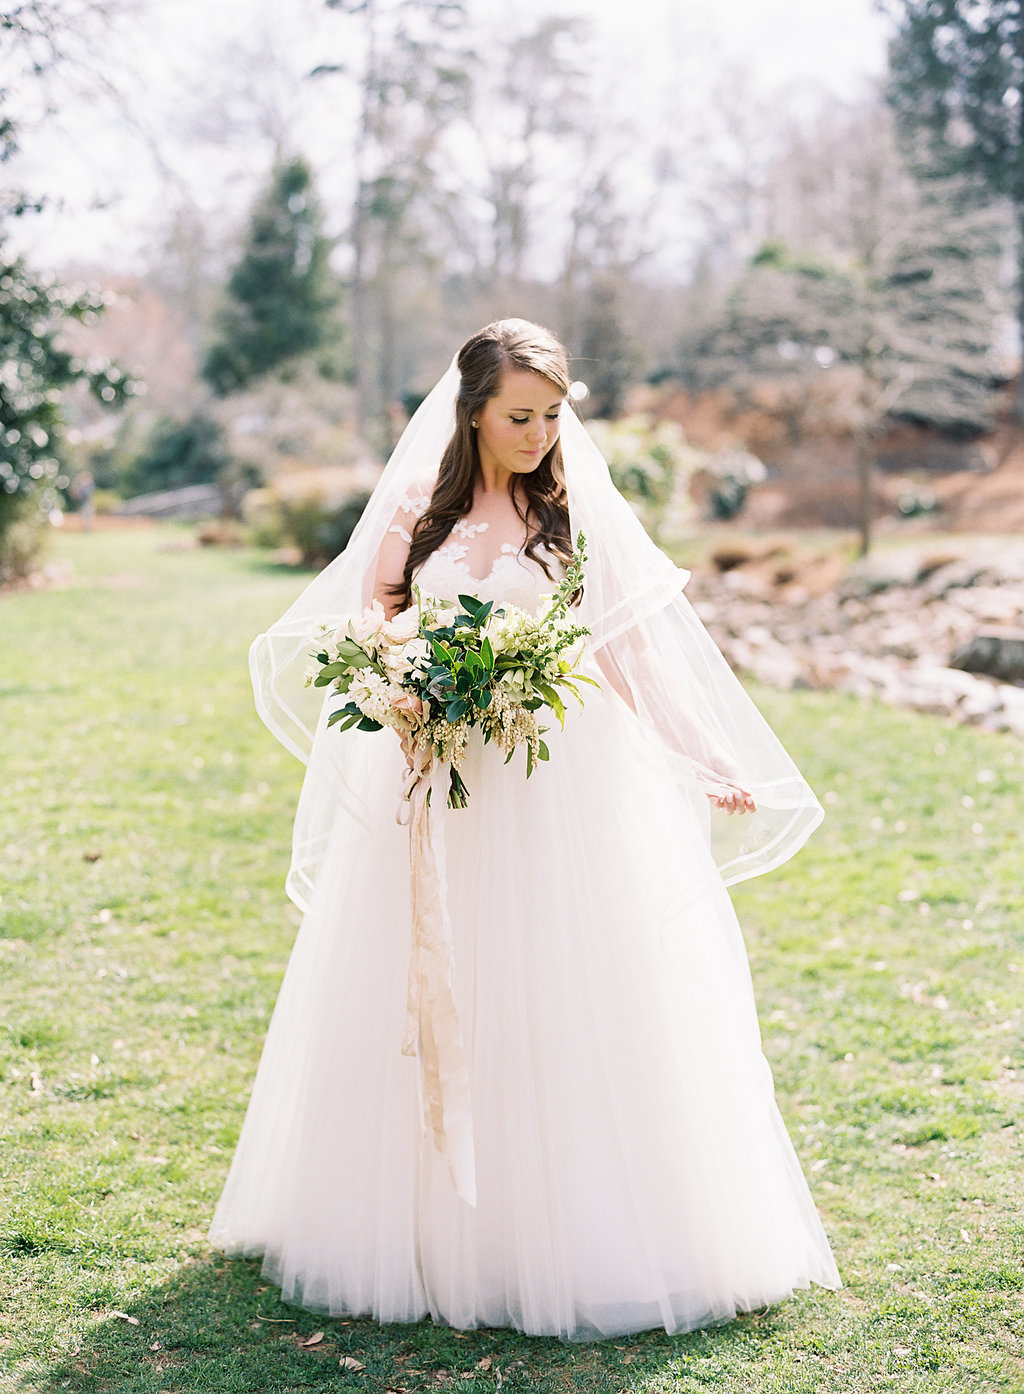 greenville-south-carolina-wedding-event-planner-jessica-rourke-288